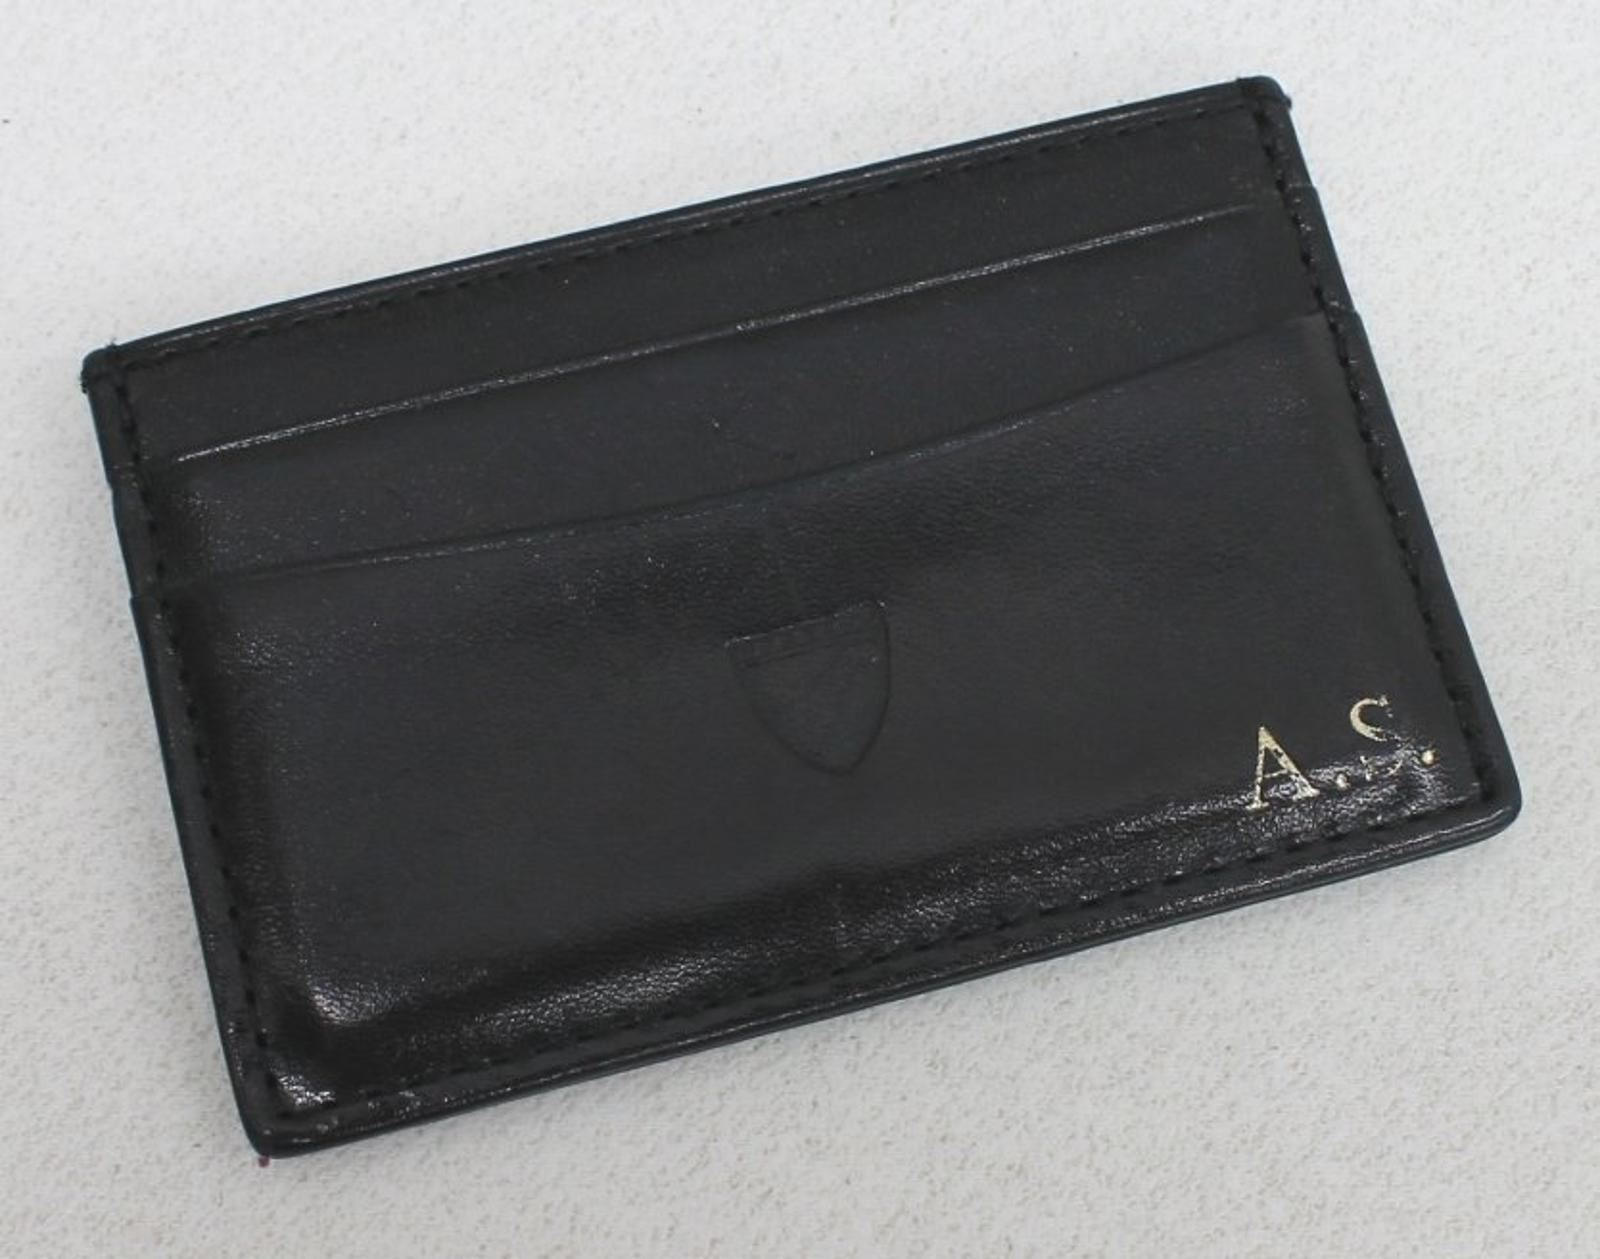 ASPINAL-OF-LONDON-Men-039-s-Black-Leather-Compact-Slim-6-Credit-Card-Case-Embossed